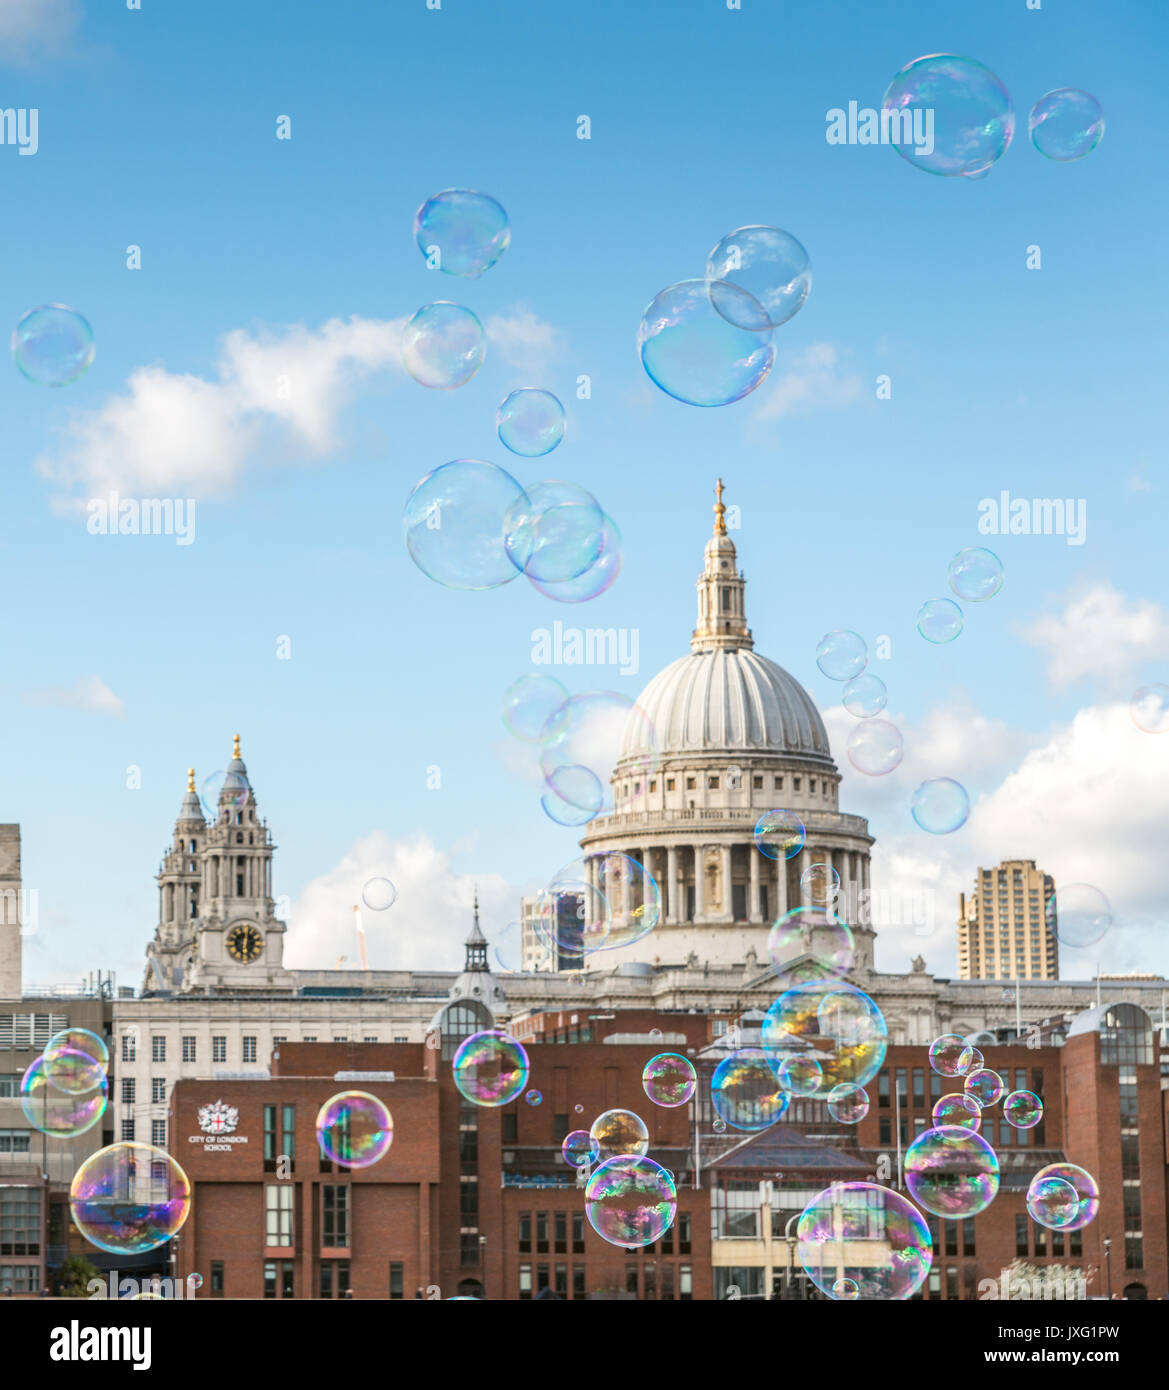 Bubbles and St. Paul's cathedral on a sunny day, London - Stock Image